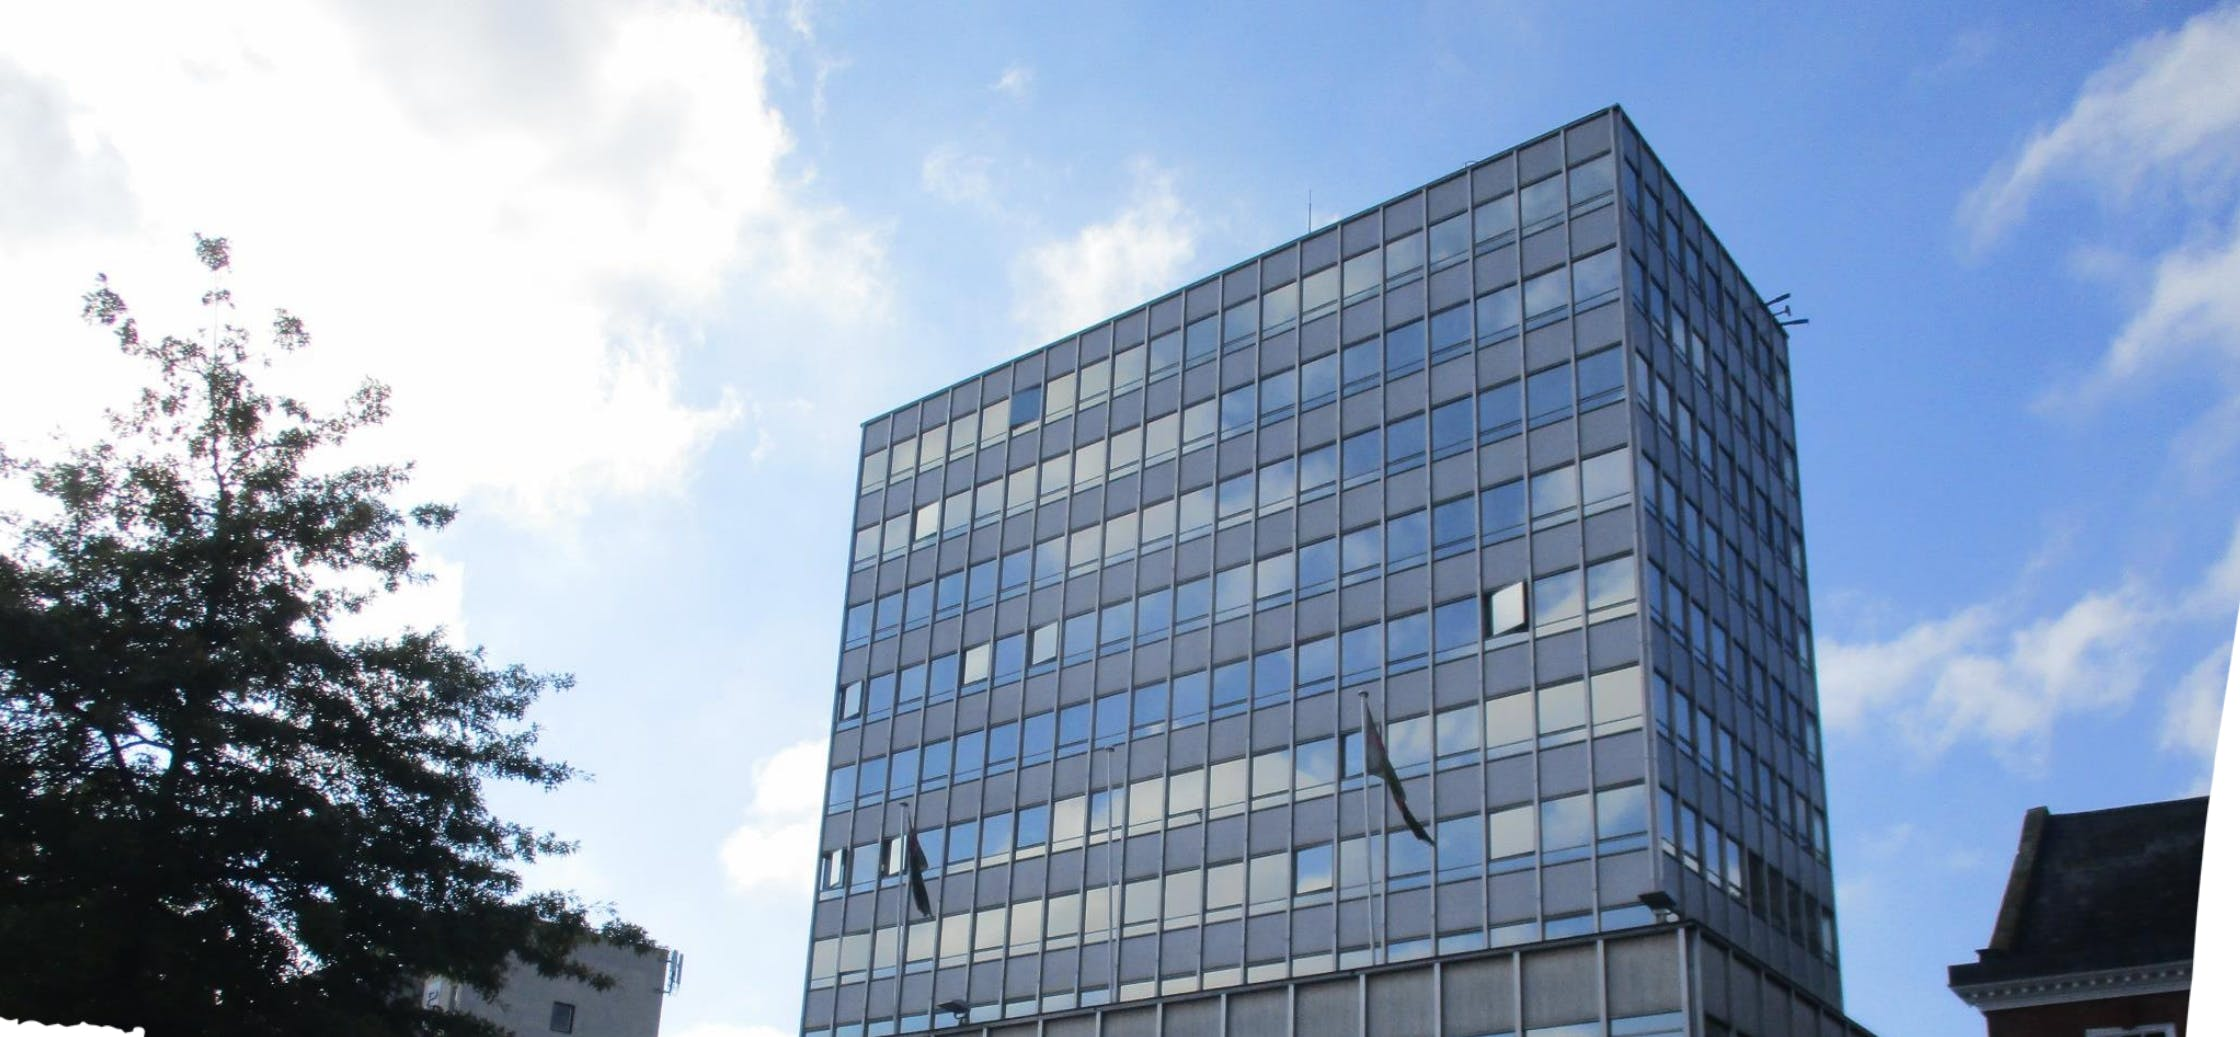 6th Floor - Market Square House, St James Street, Nottingham, Office To Let - 6th floor image.PNG